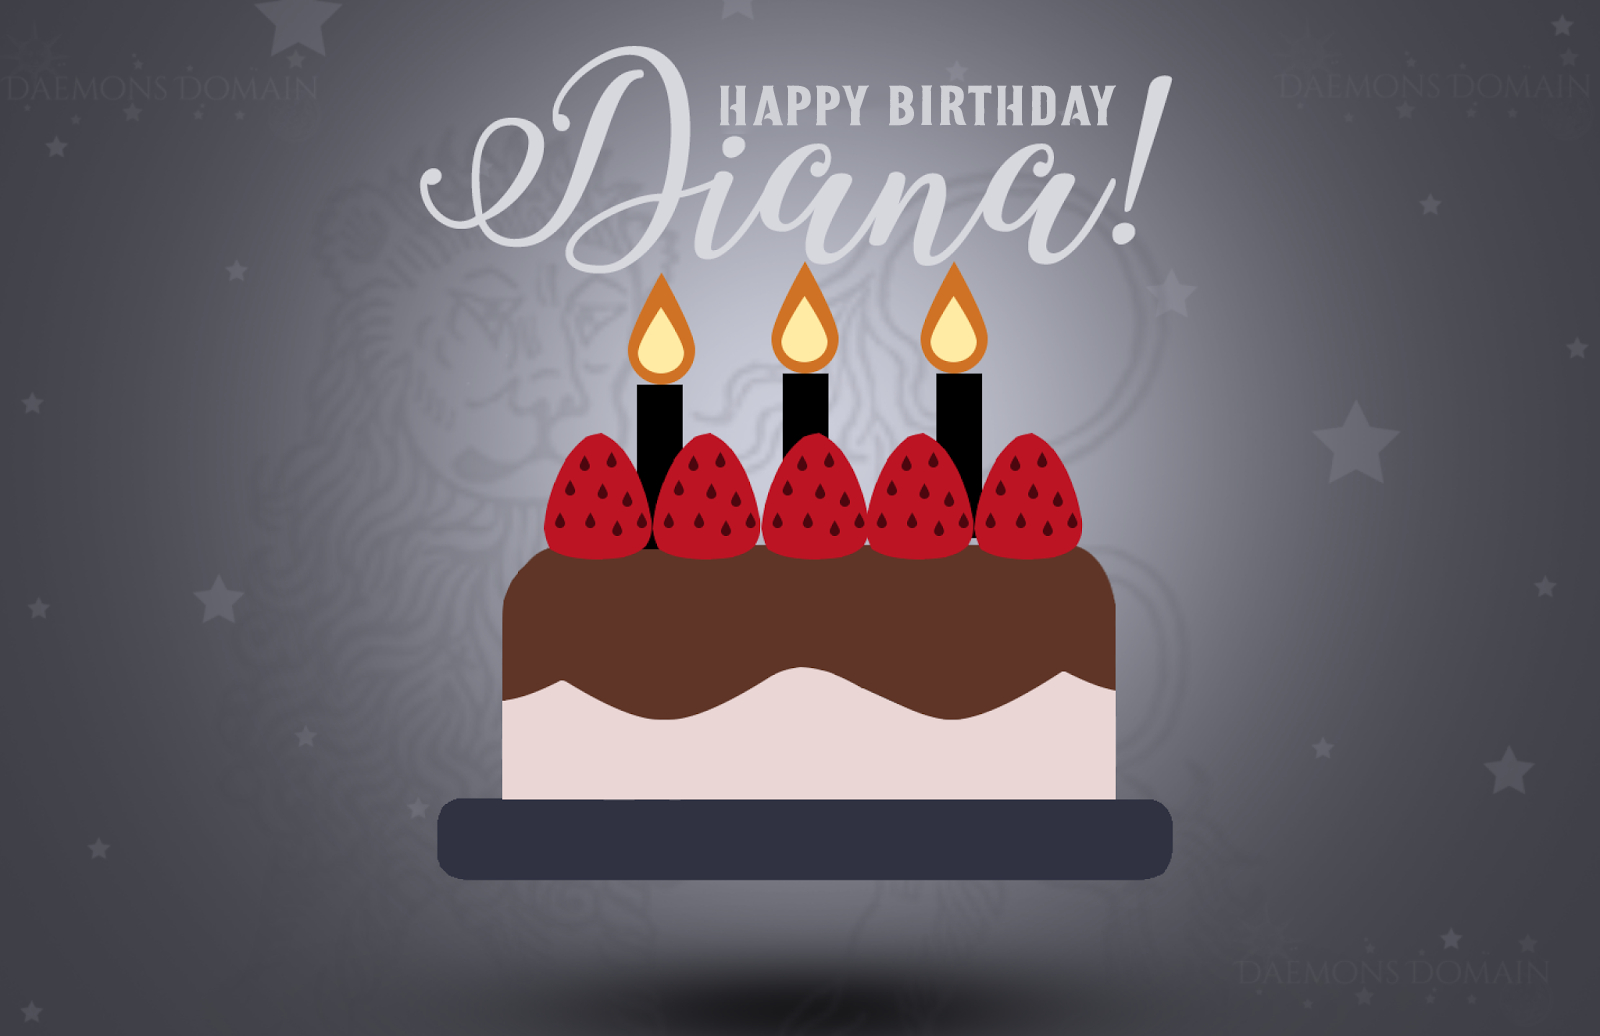 Happy Birthday Diana Cake Daemons Domain All Souls Trilogy Universe Fan Site Podcast